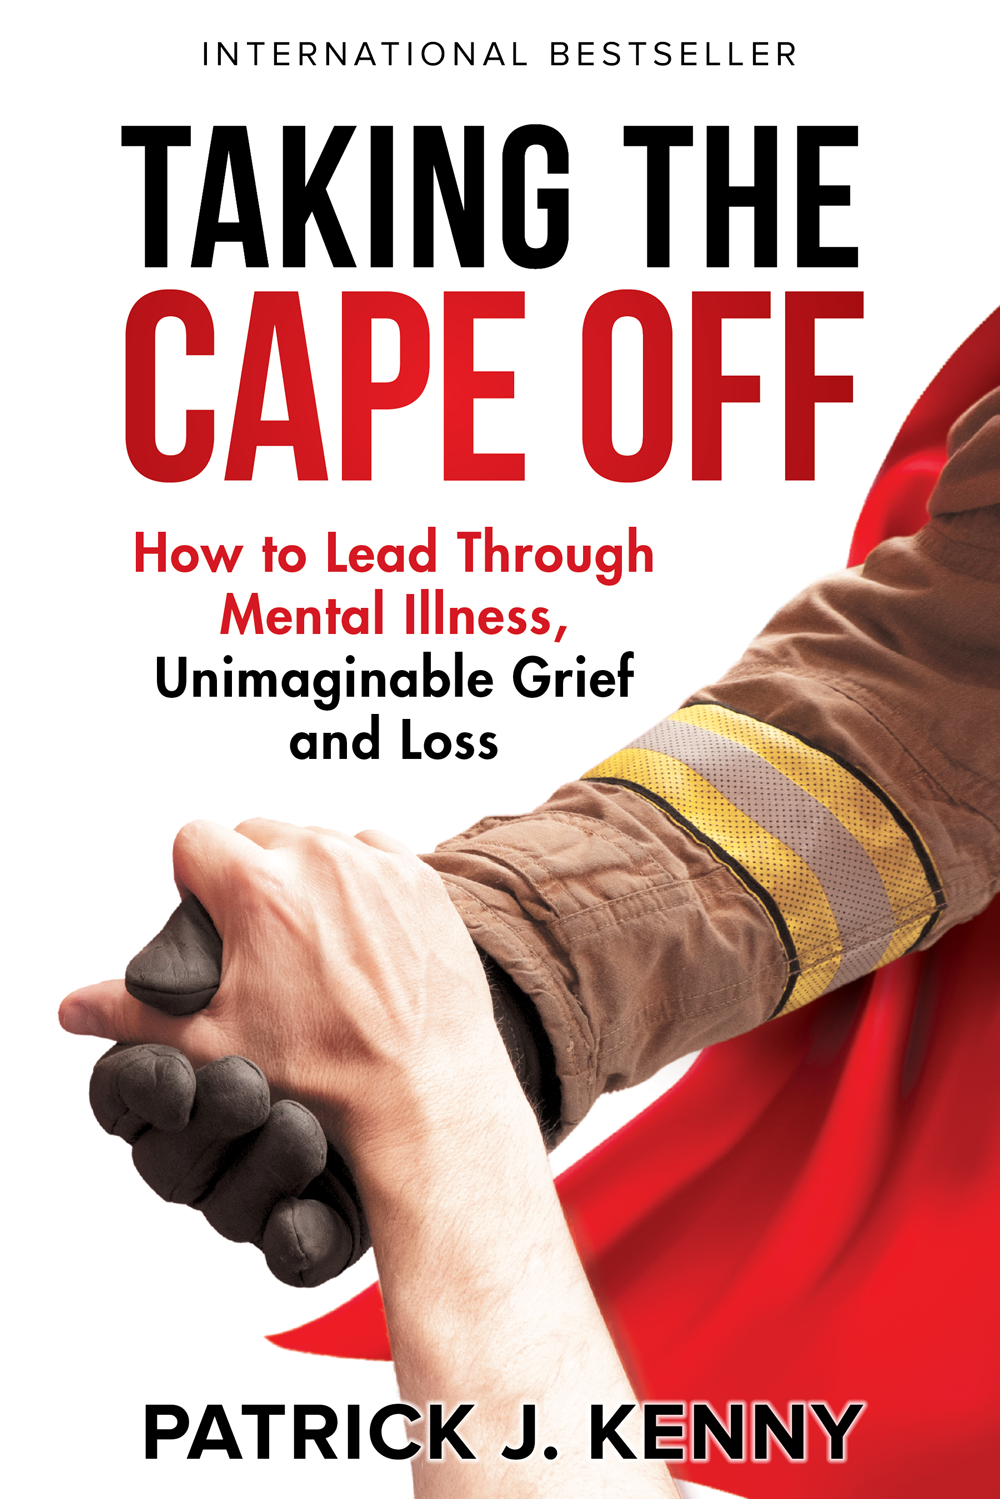 Taking The Cape Off Book Image